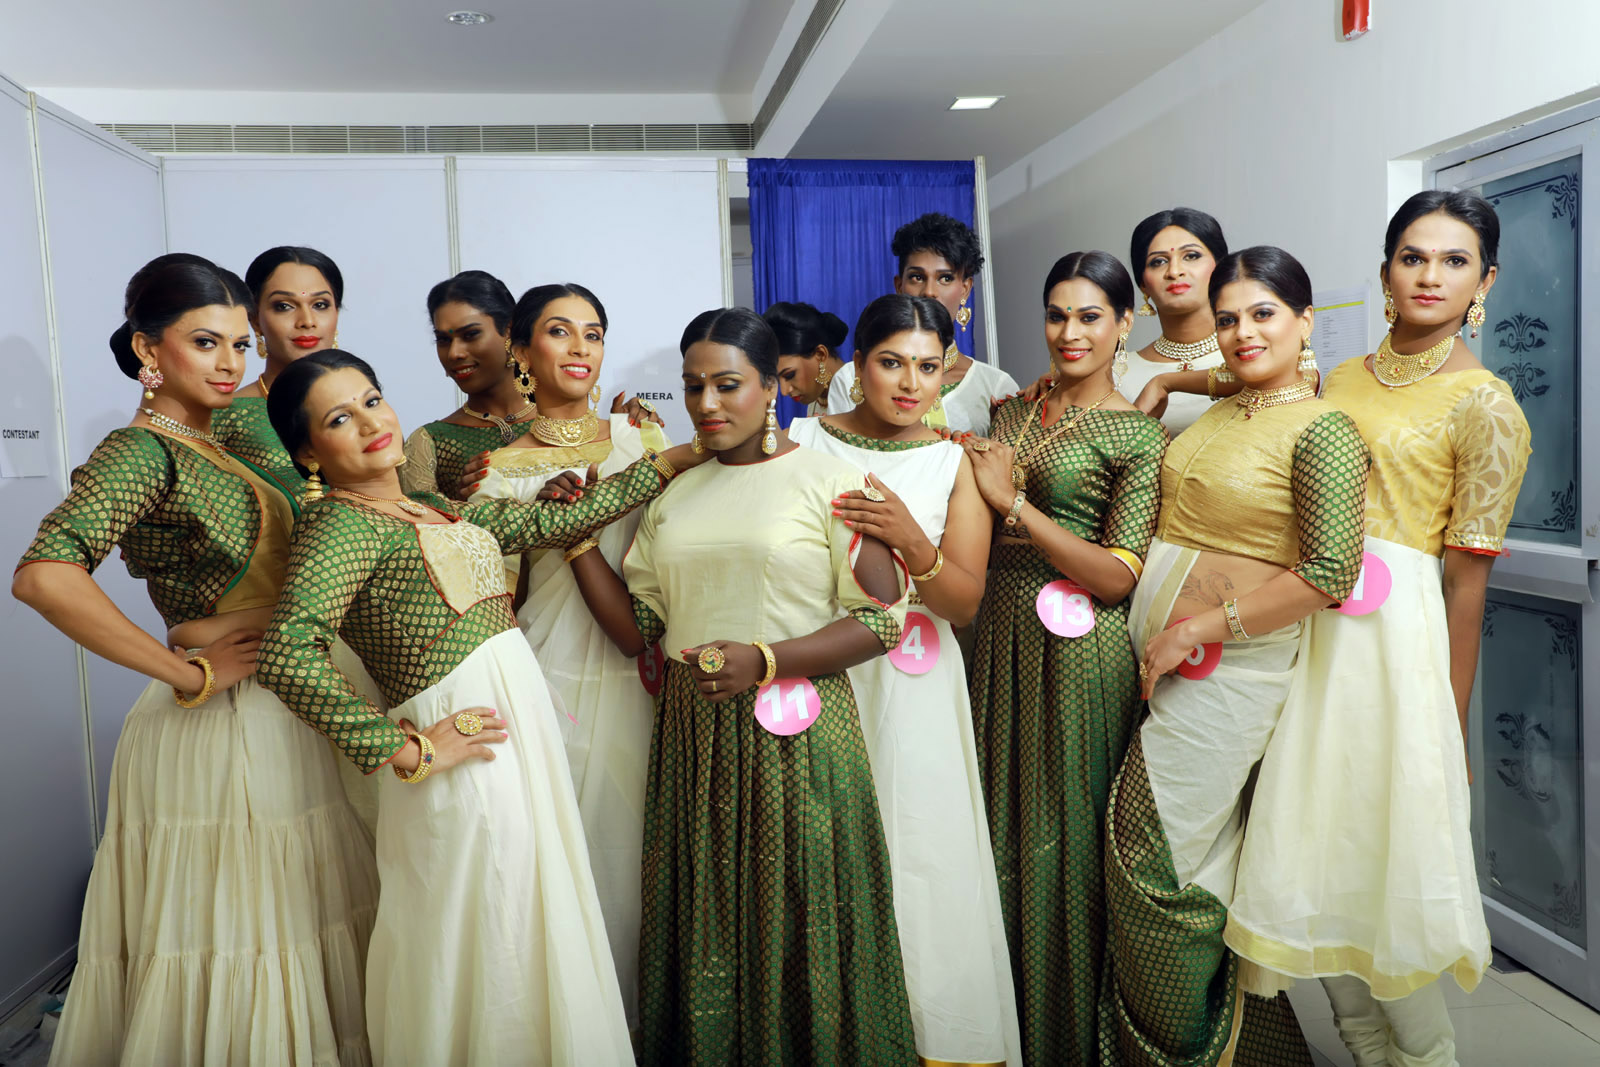 Contestants at Dhwayah Arts and Charitable Society's beauty pageant. Photo credit: Justin Anthony